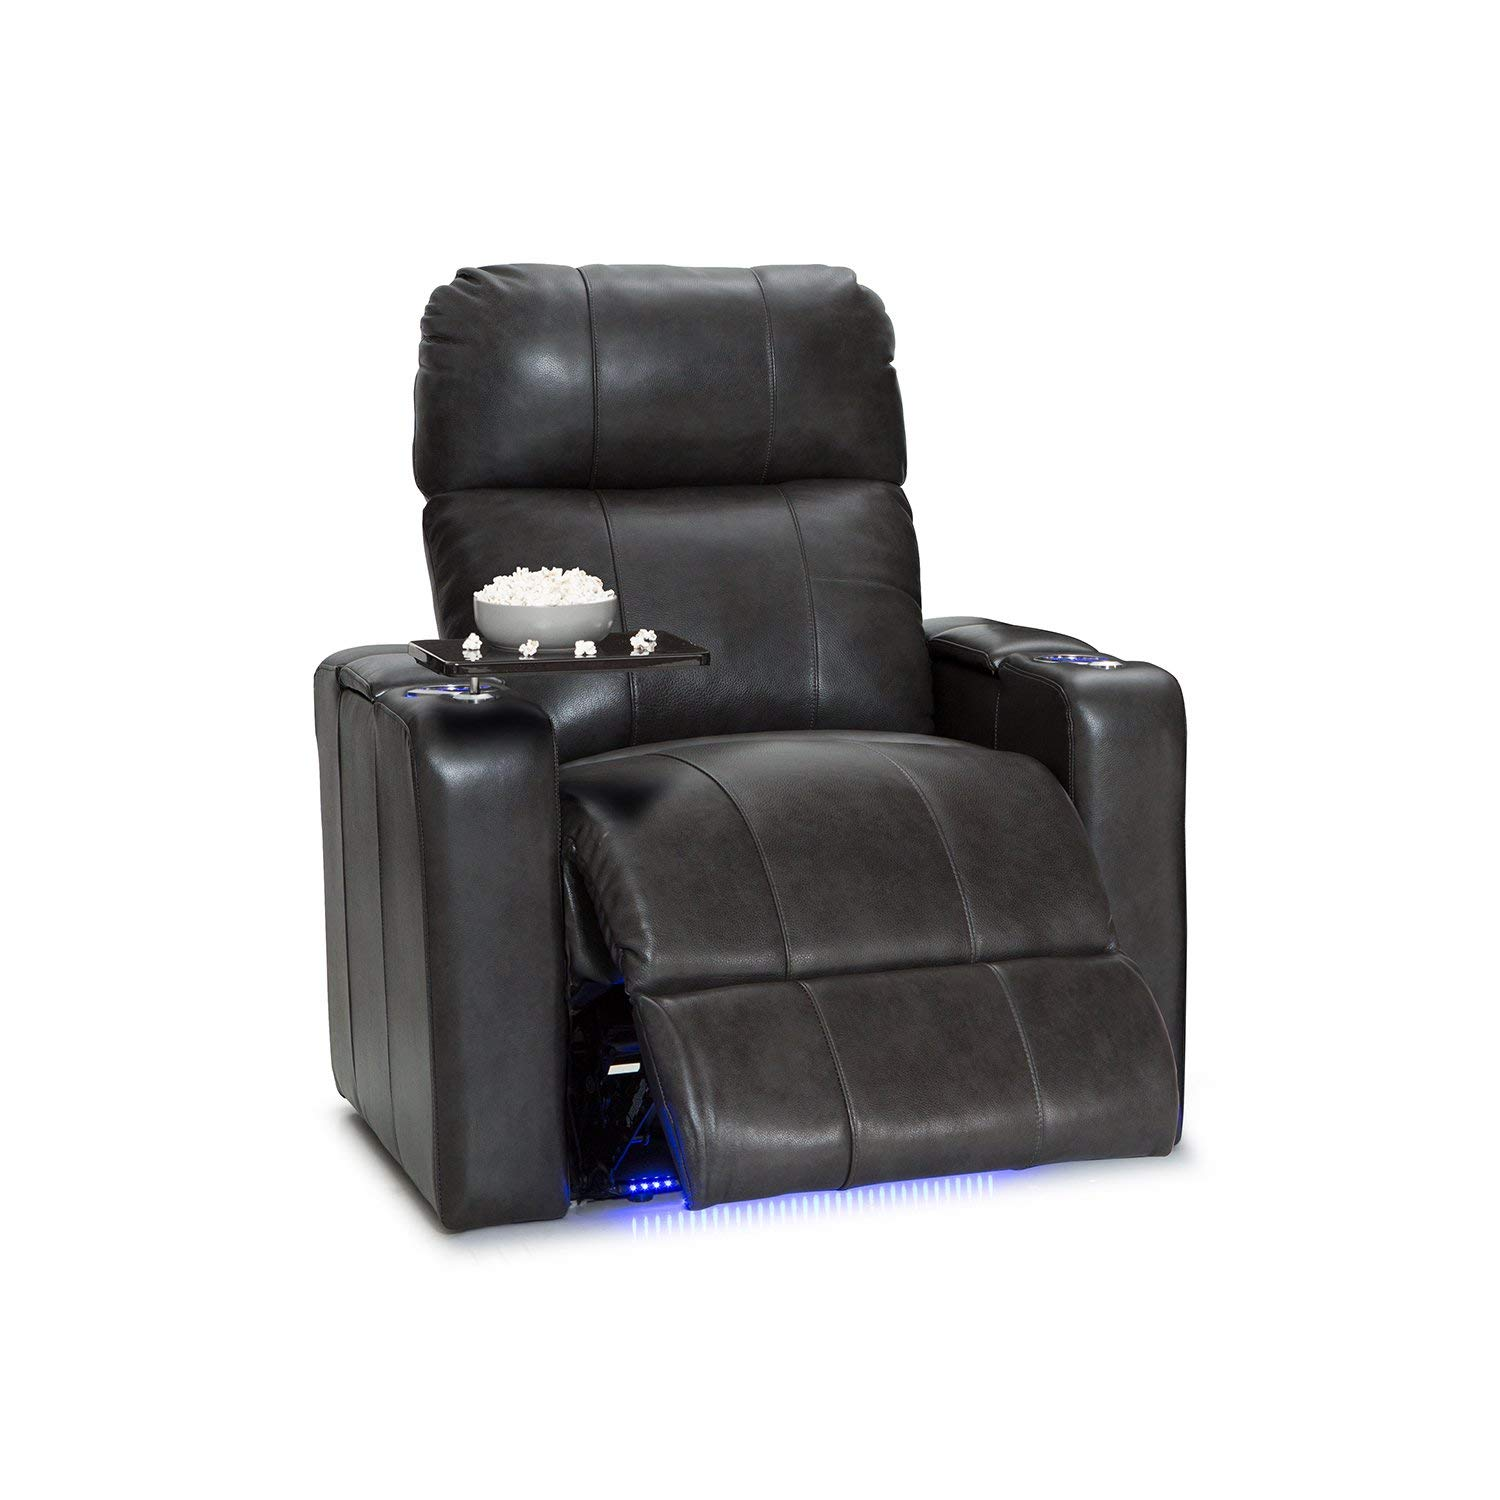 Seatcraft 2208 Monterey Leather Power Recliner with Adjustable Headrest, in-Arm Storage, and USB Charging, Grey